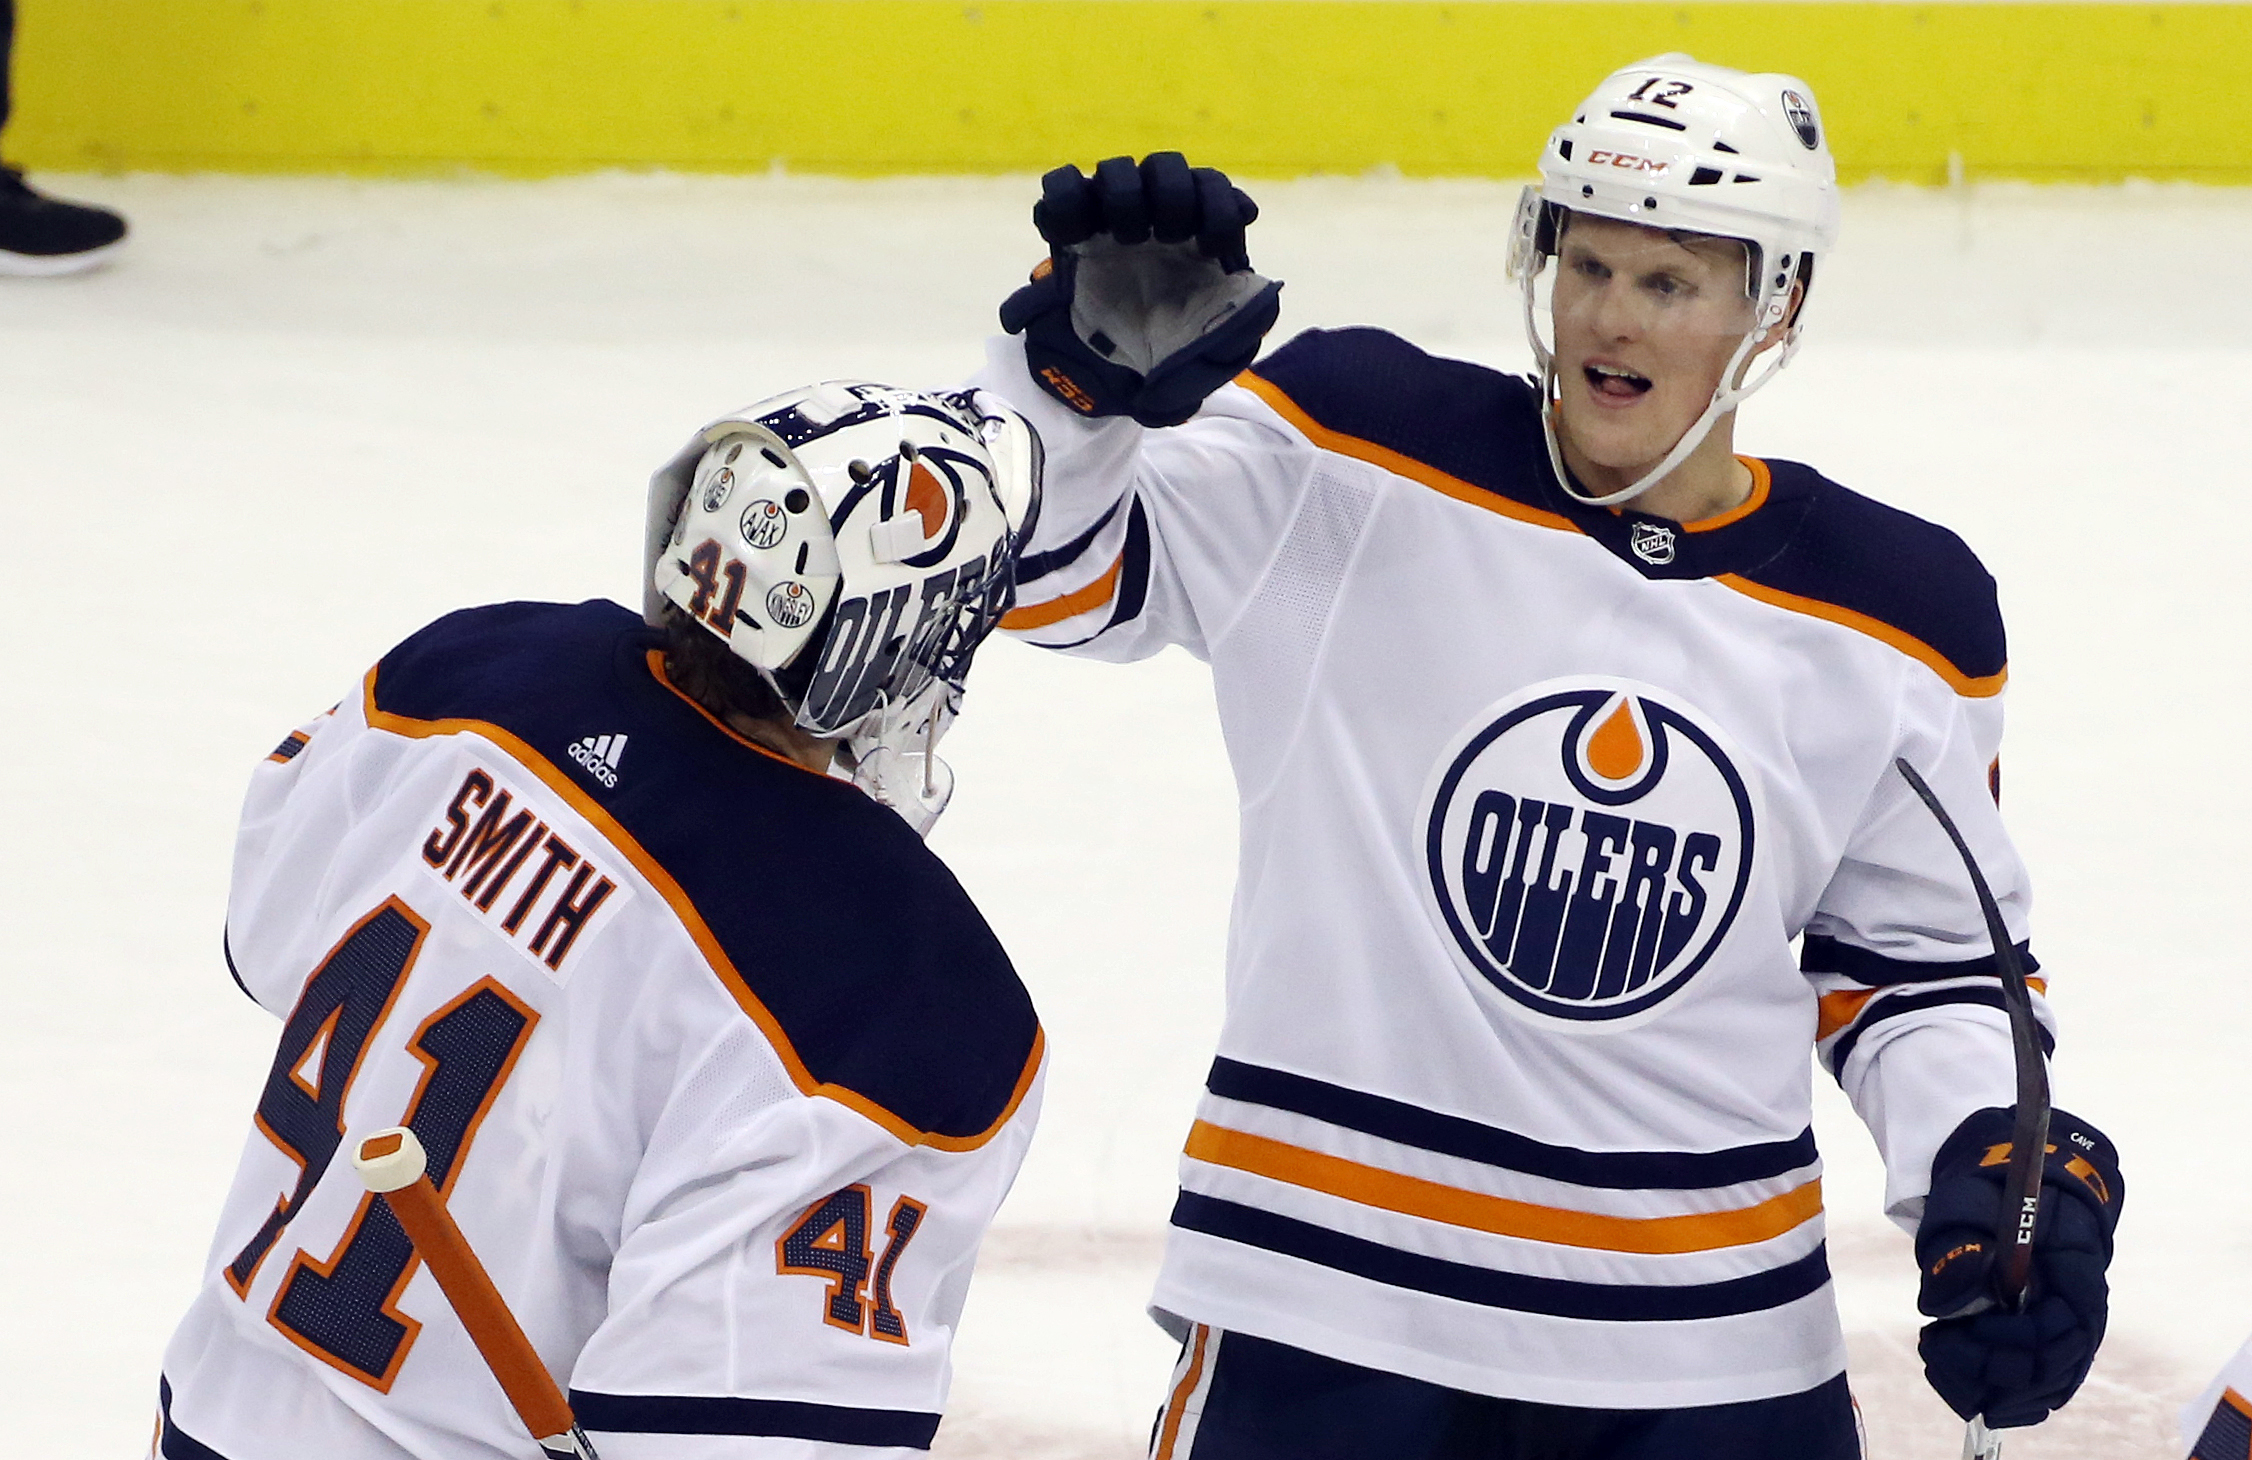 Edmonton Oilers goaltender Mike Smith (41) and center Colby Cave (12) celebrate after defeating the Pittsburgh Penguins at PPG PAINTS Arena. The Oilers won 2-1 in overtime.